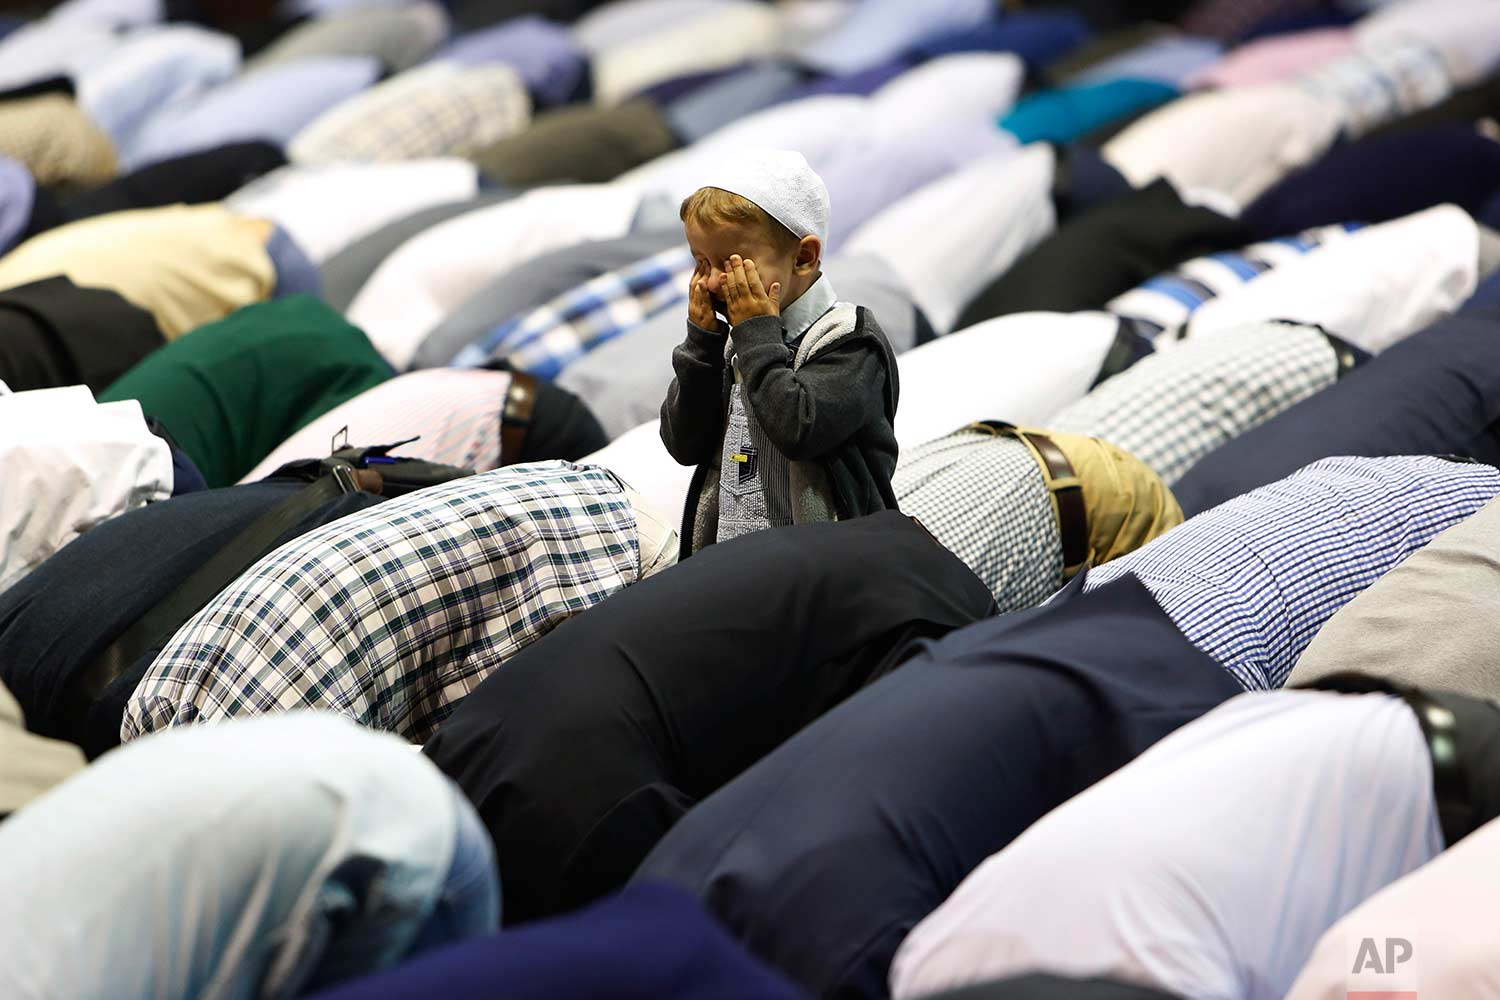 A boy offers Eid al-Adha prayers at the sport center in Sarajevo, Bosnia, Friday, Sept. 1, 2017. (AP Photo/Amel Emric)